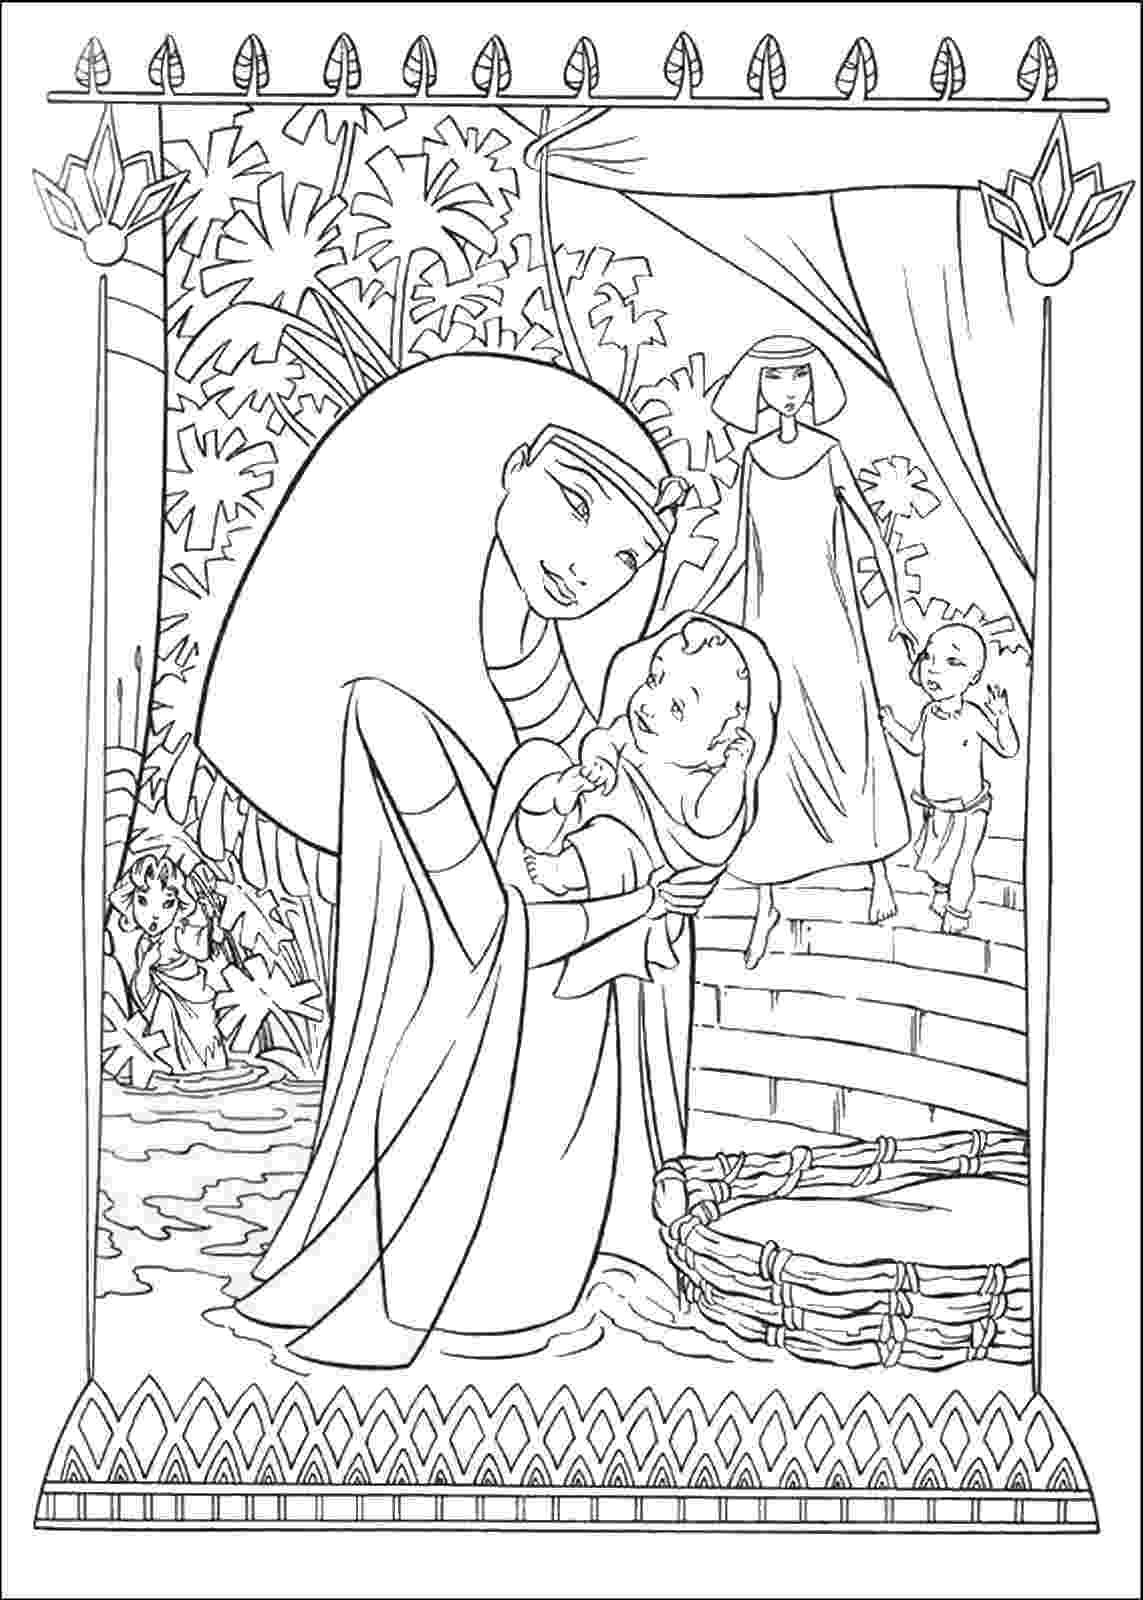 egypt coloring pages ancient egypt coloring pages to download and print for free coloring pages egypt 1 1